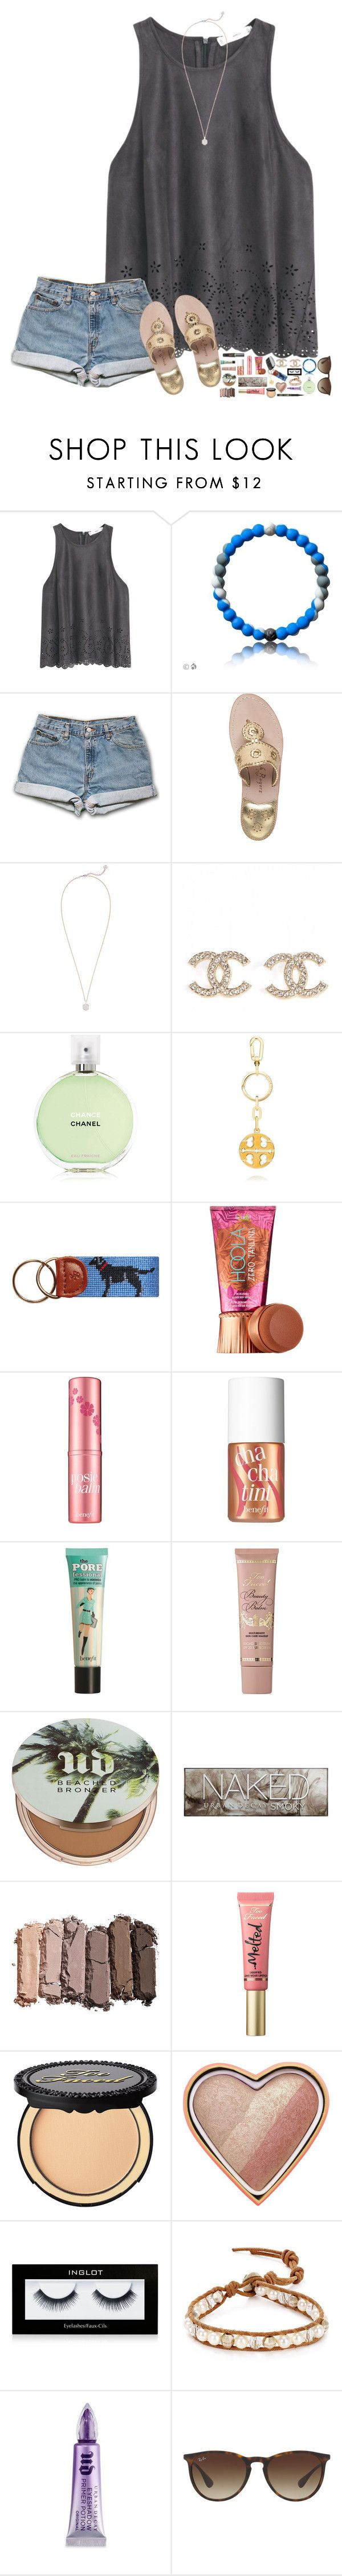 """""""Please read the description! I need yall's advice!"""" by hopemarlee ❤ liked on Polyvore featuring MANGO, Jack Rogers, Kendra Scott, Chanel, Tory Burch, Benefit, Too Faced Cosmetics, Urban Decay, Inglot and Chan Luu"""